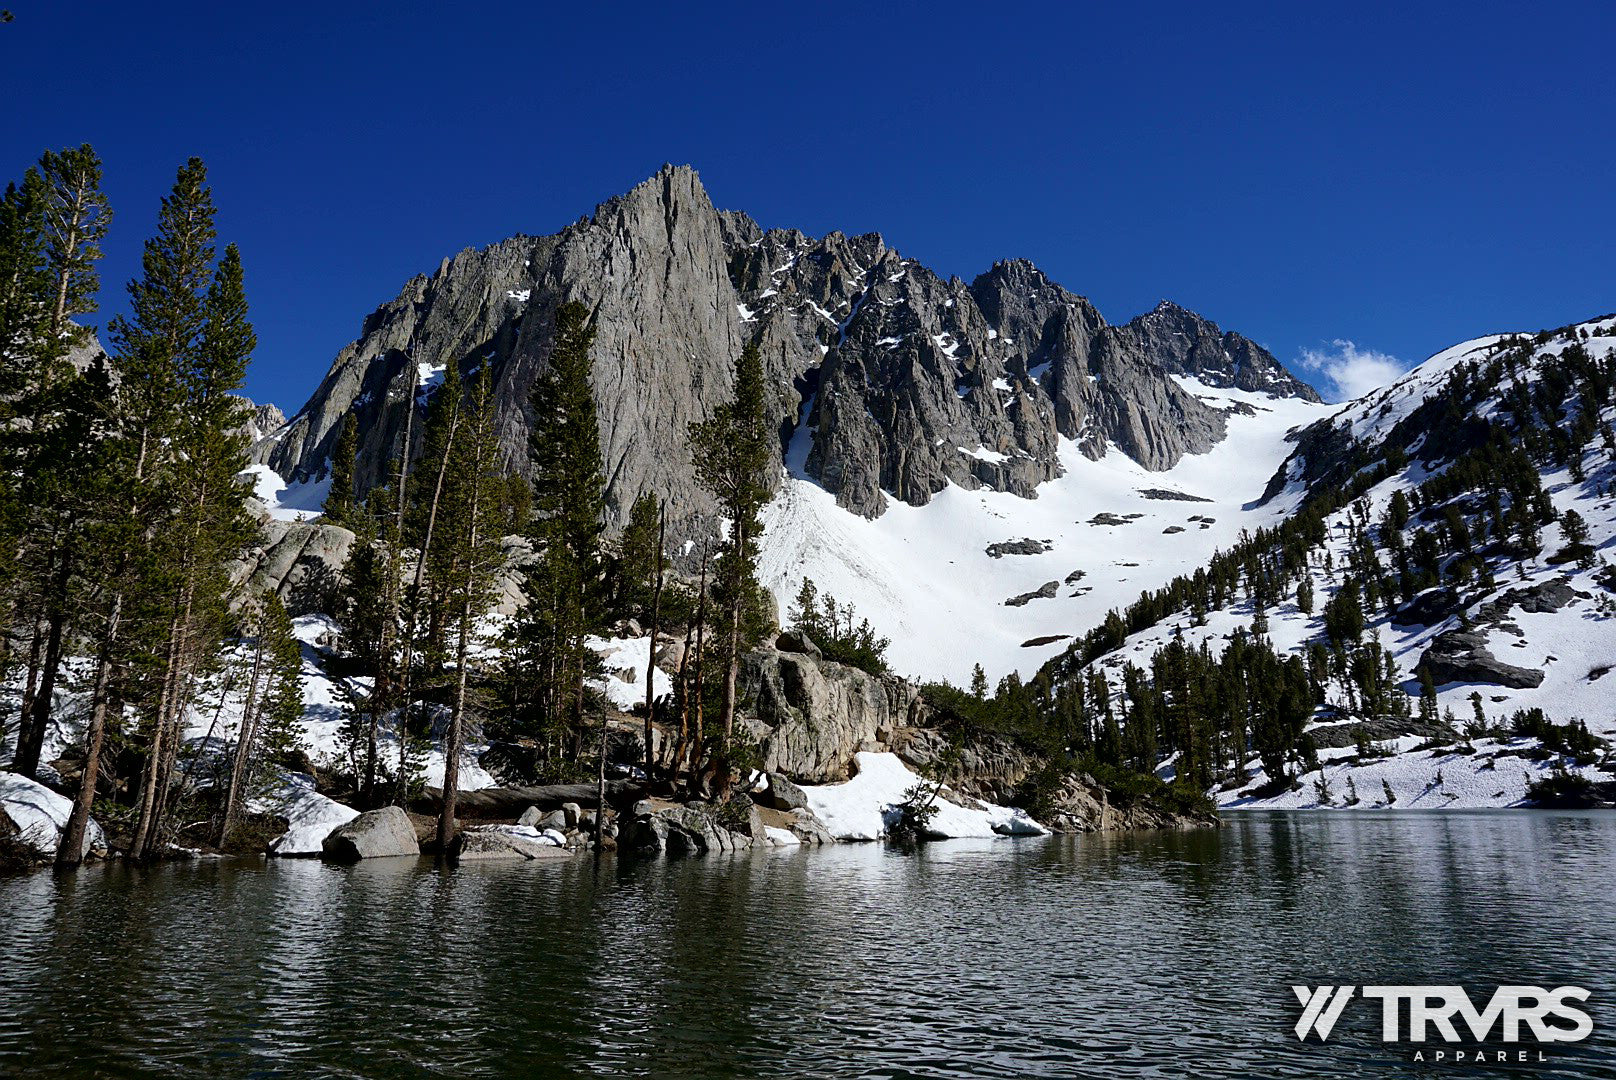 View of Temple Crag via Third Lake - North Fork Big Pine Lakes | TRVRS APPAREL